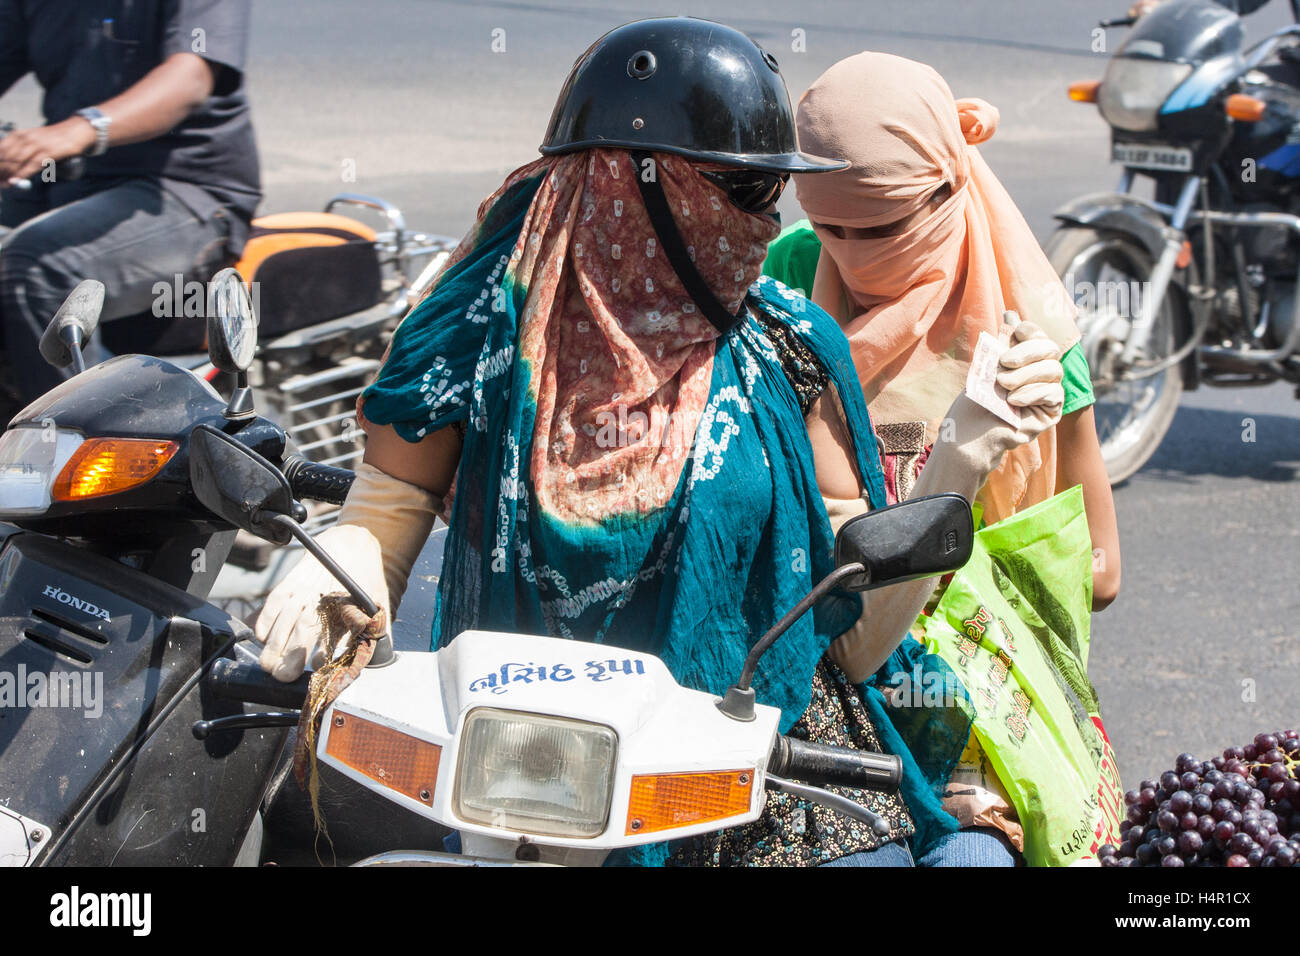 Face and arm covered women, to protect from sun and pollution, riding driving on a scooter in centre of Ahmedabad,Gujurat. - Stock Image